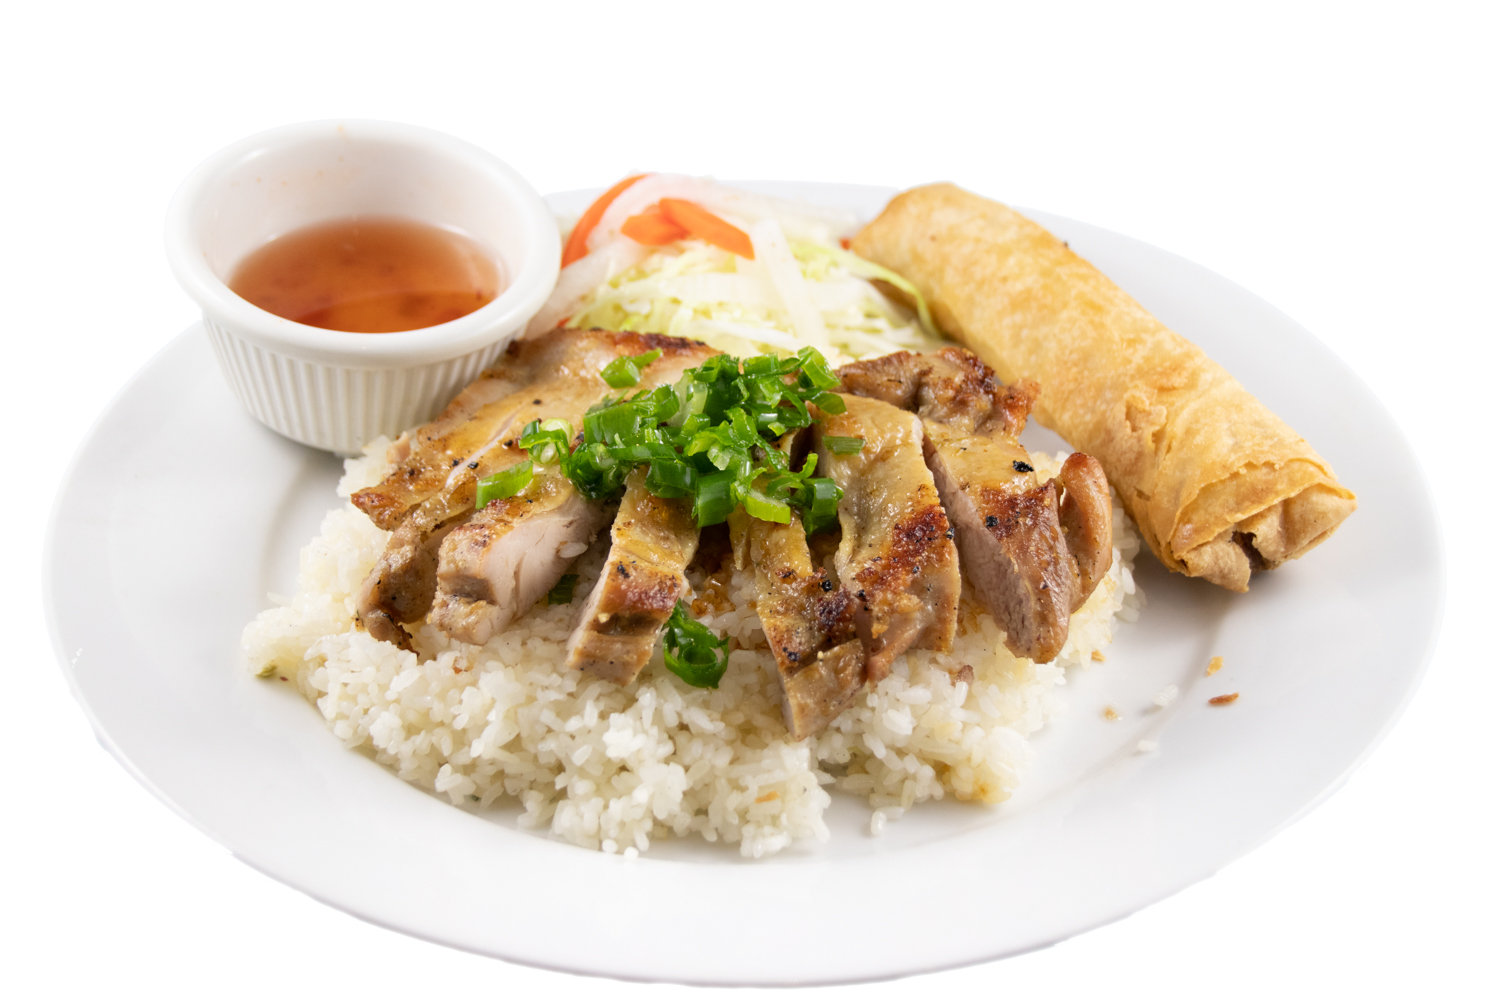 Bún / Cơm  gà nướng chả giò – Barbequed chicken and spring roll with rice or noodle